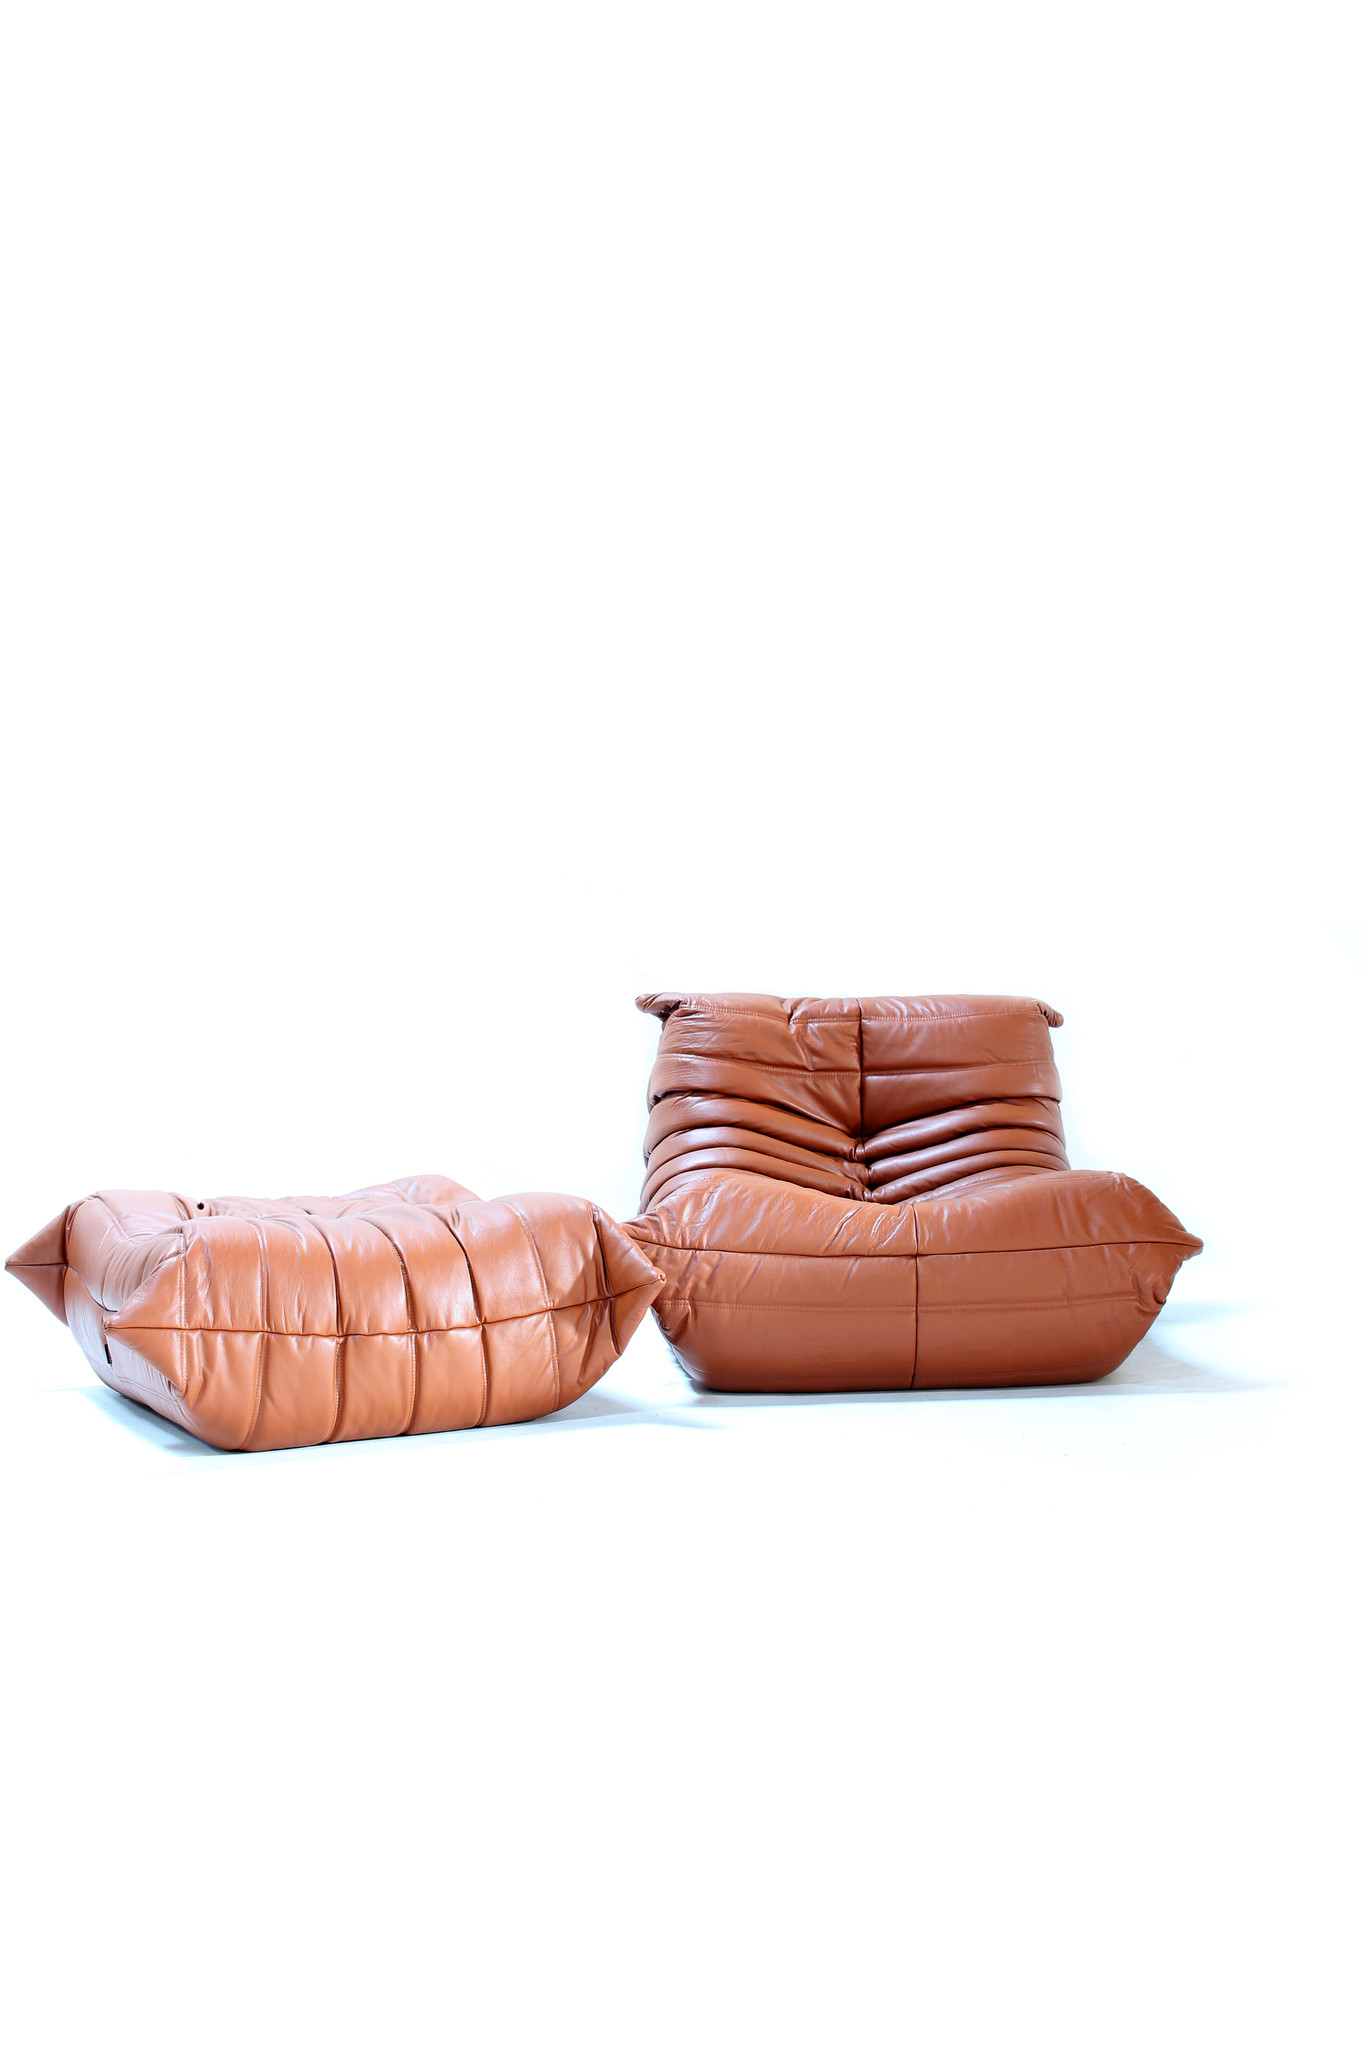 Ligne roset togo in cognac leather